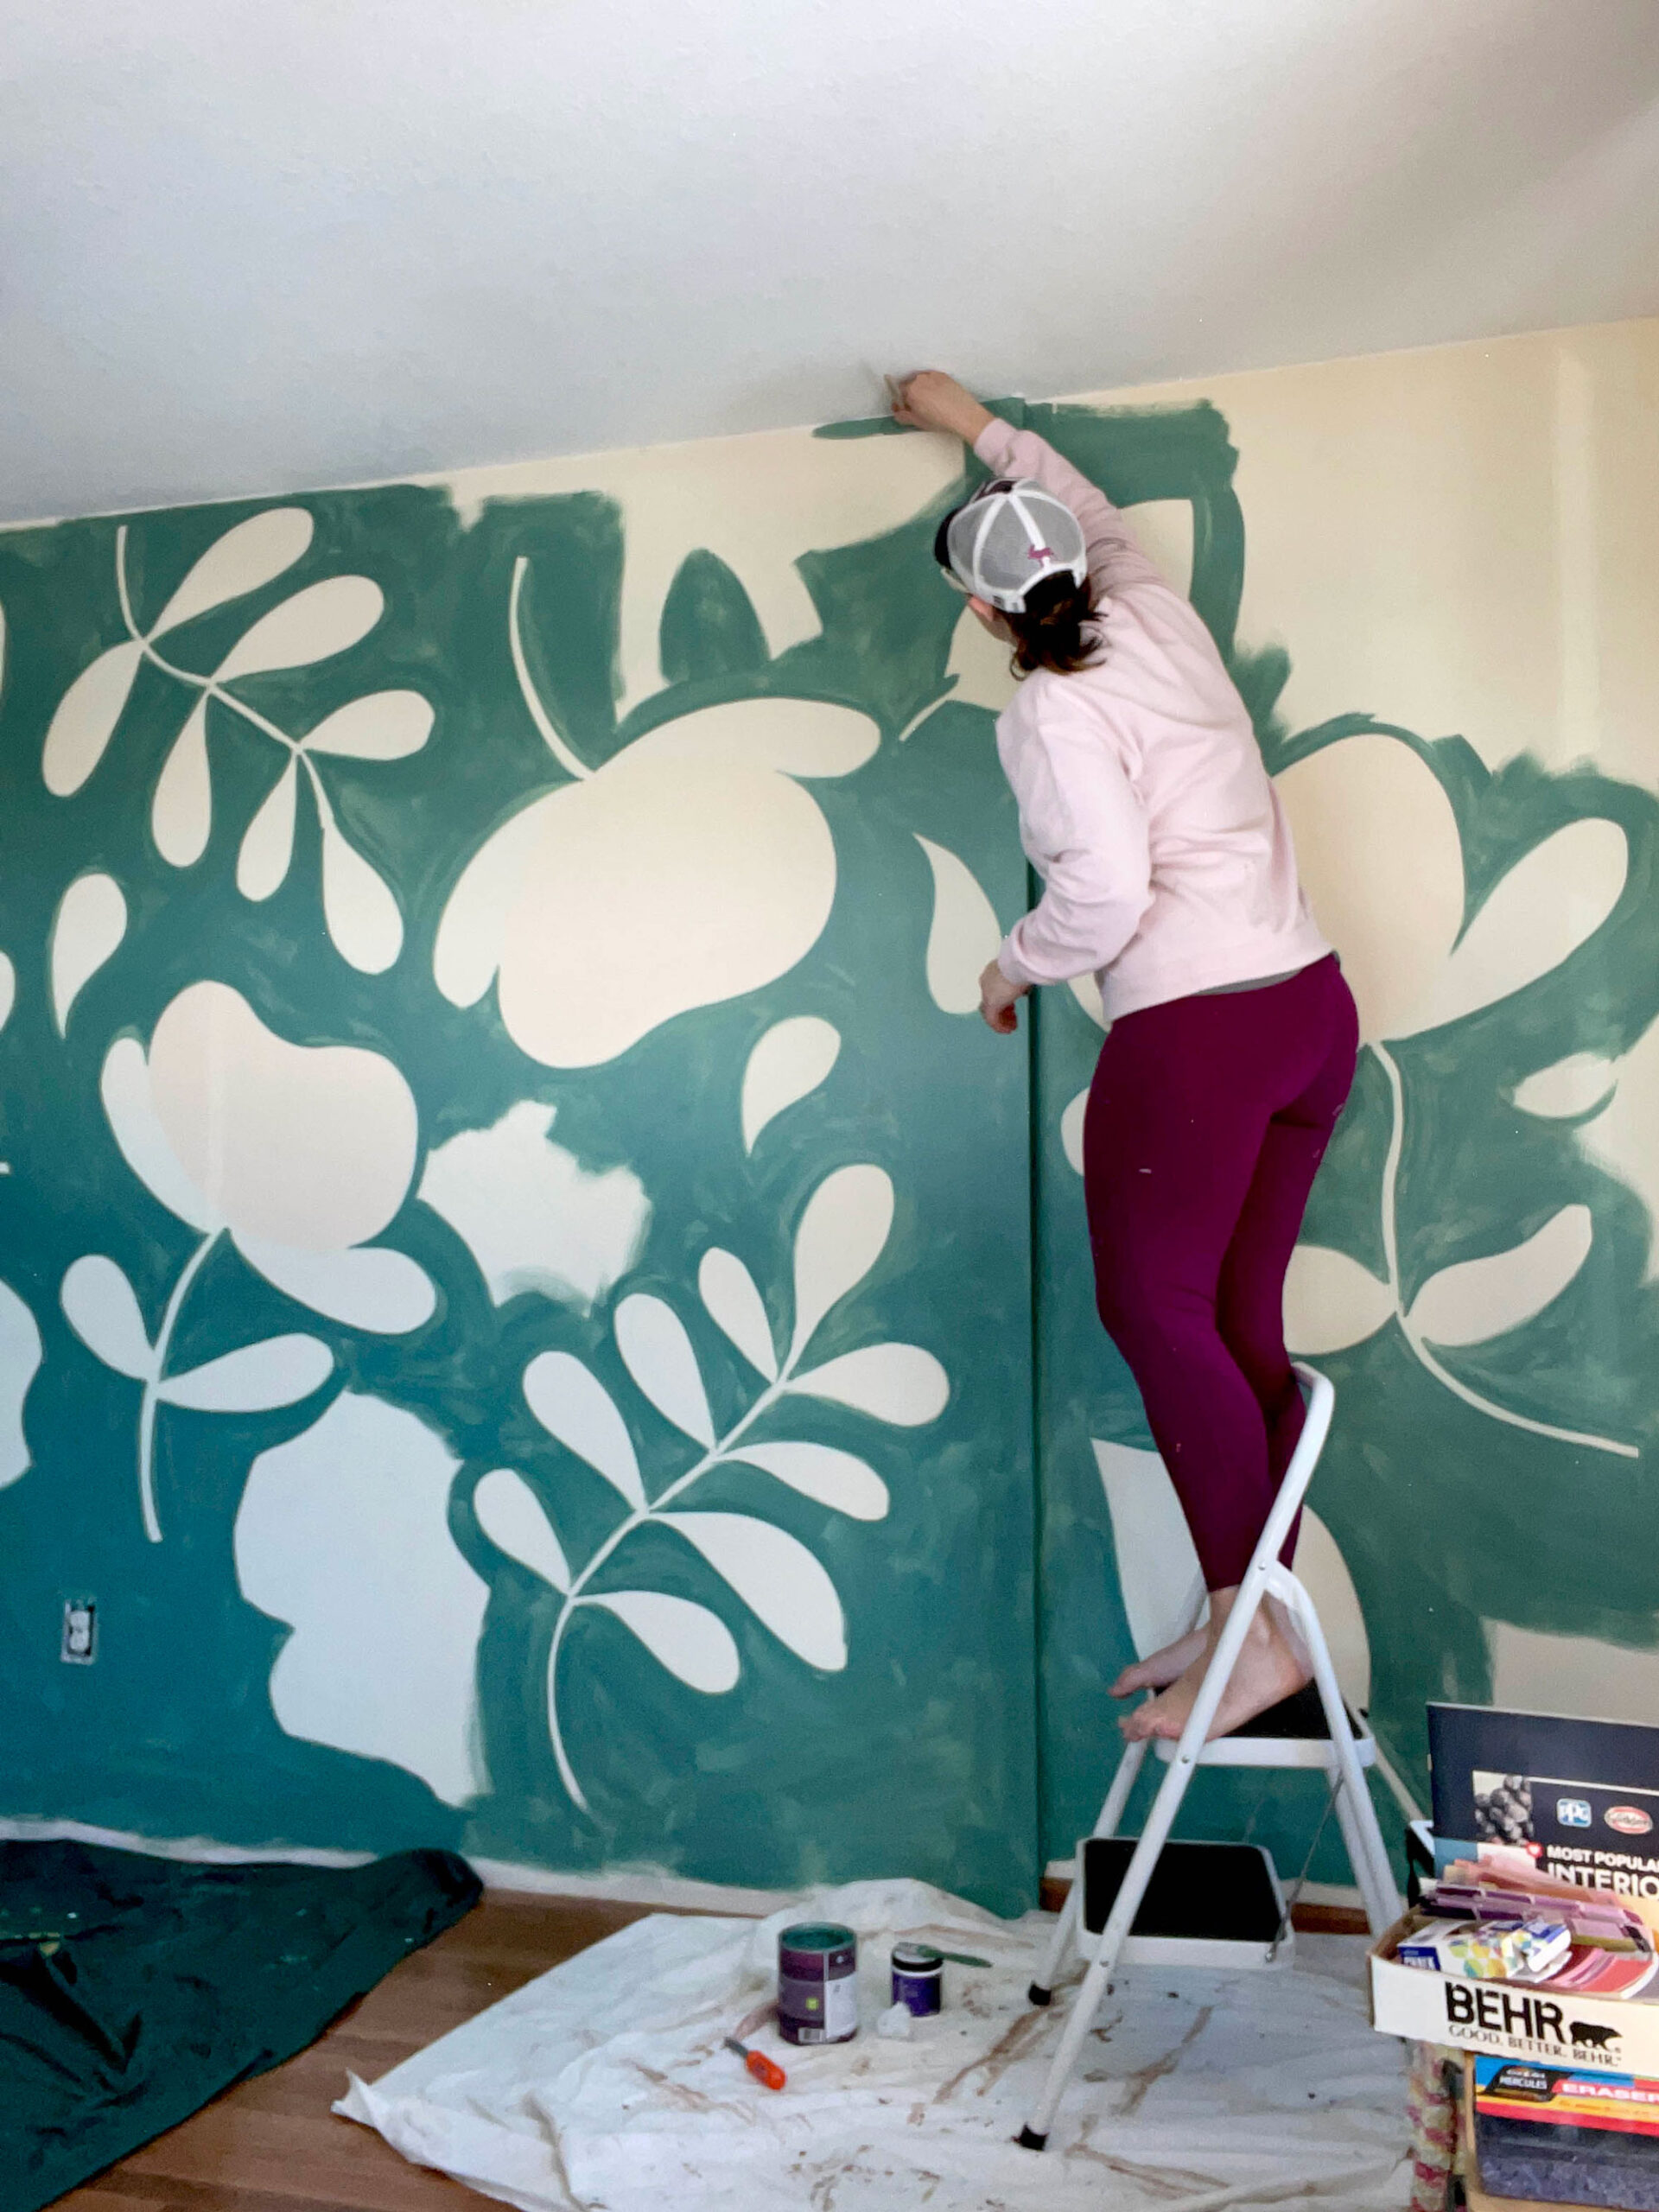 Floral wall mural, How to paint a floral mural, Playroom mural, Playroom floral mural, Floral mural how to, Home mural tips, Mural DIY